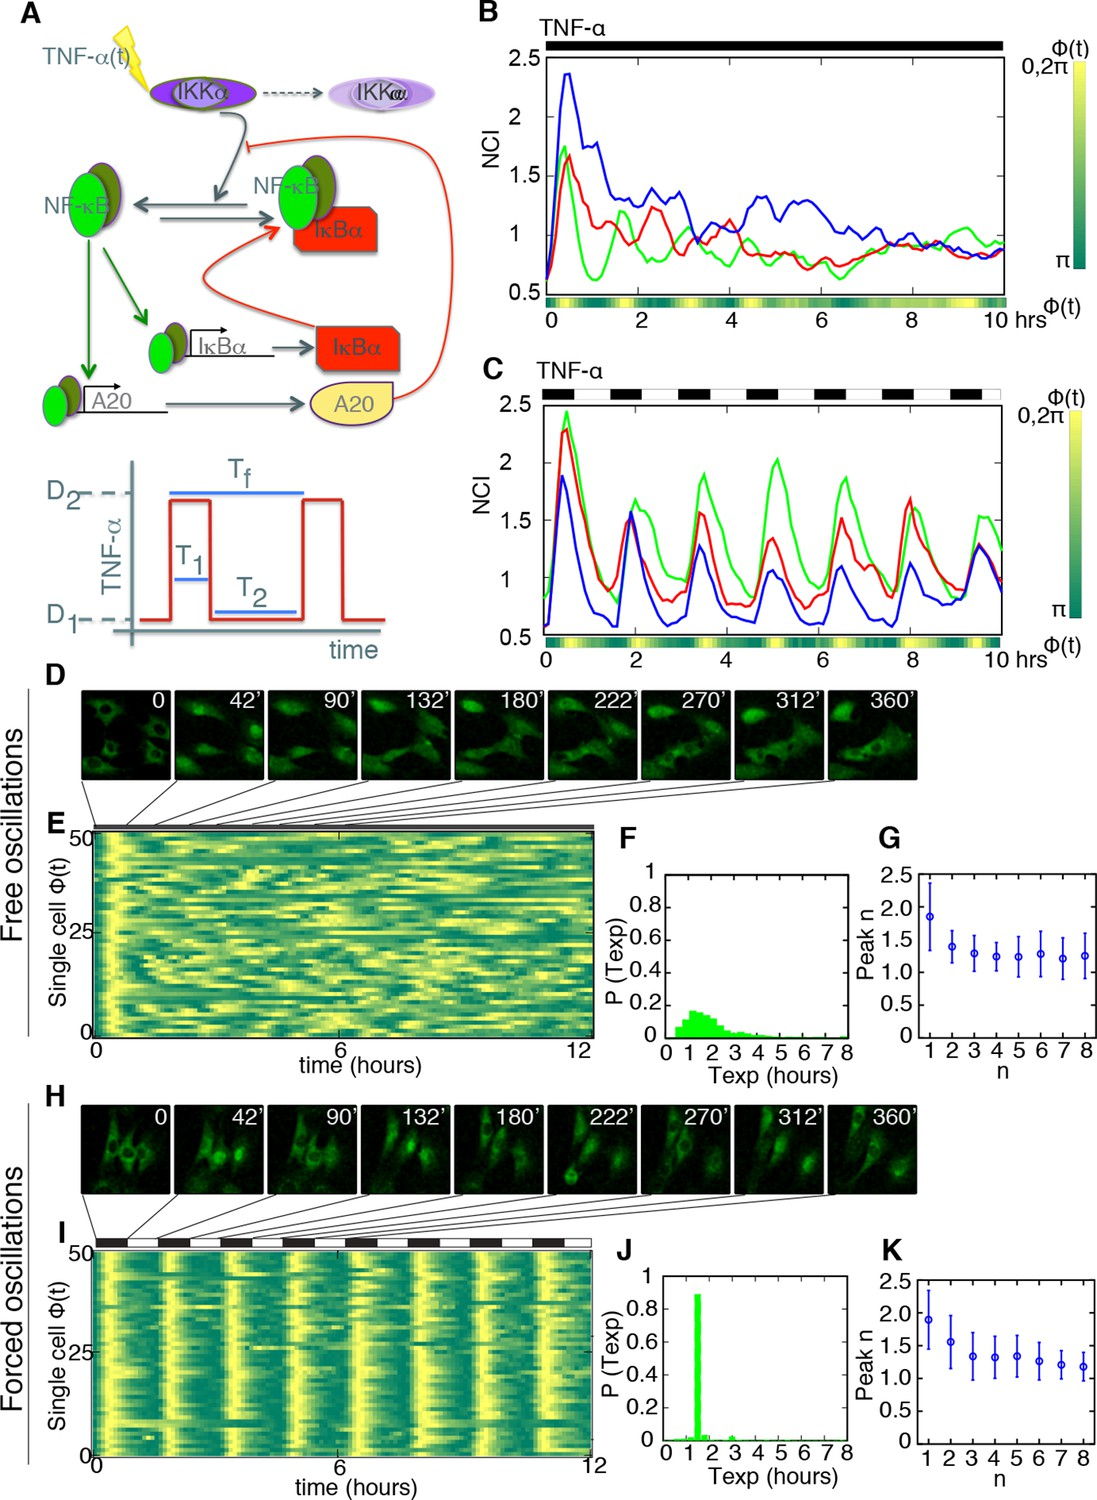 Nf B Oscillations Translate Into Functionally Related Patterns Of Inductive Proximity Sensor Comprising A Resonant Oscillatory Circuit Periodic Forcing Turns Damped Heterogeneous Oscillation Synchronous Sustained